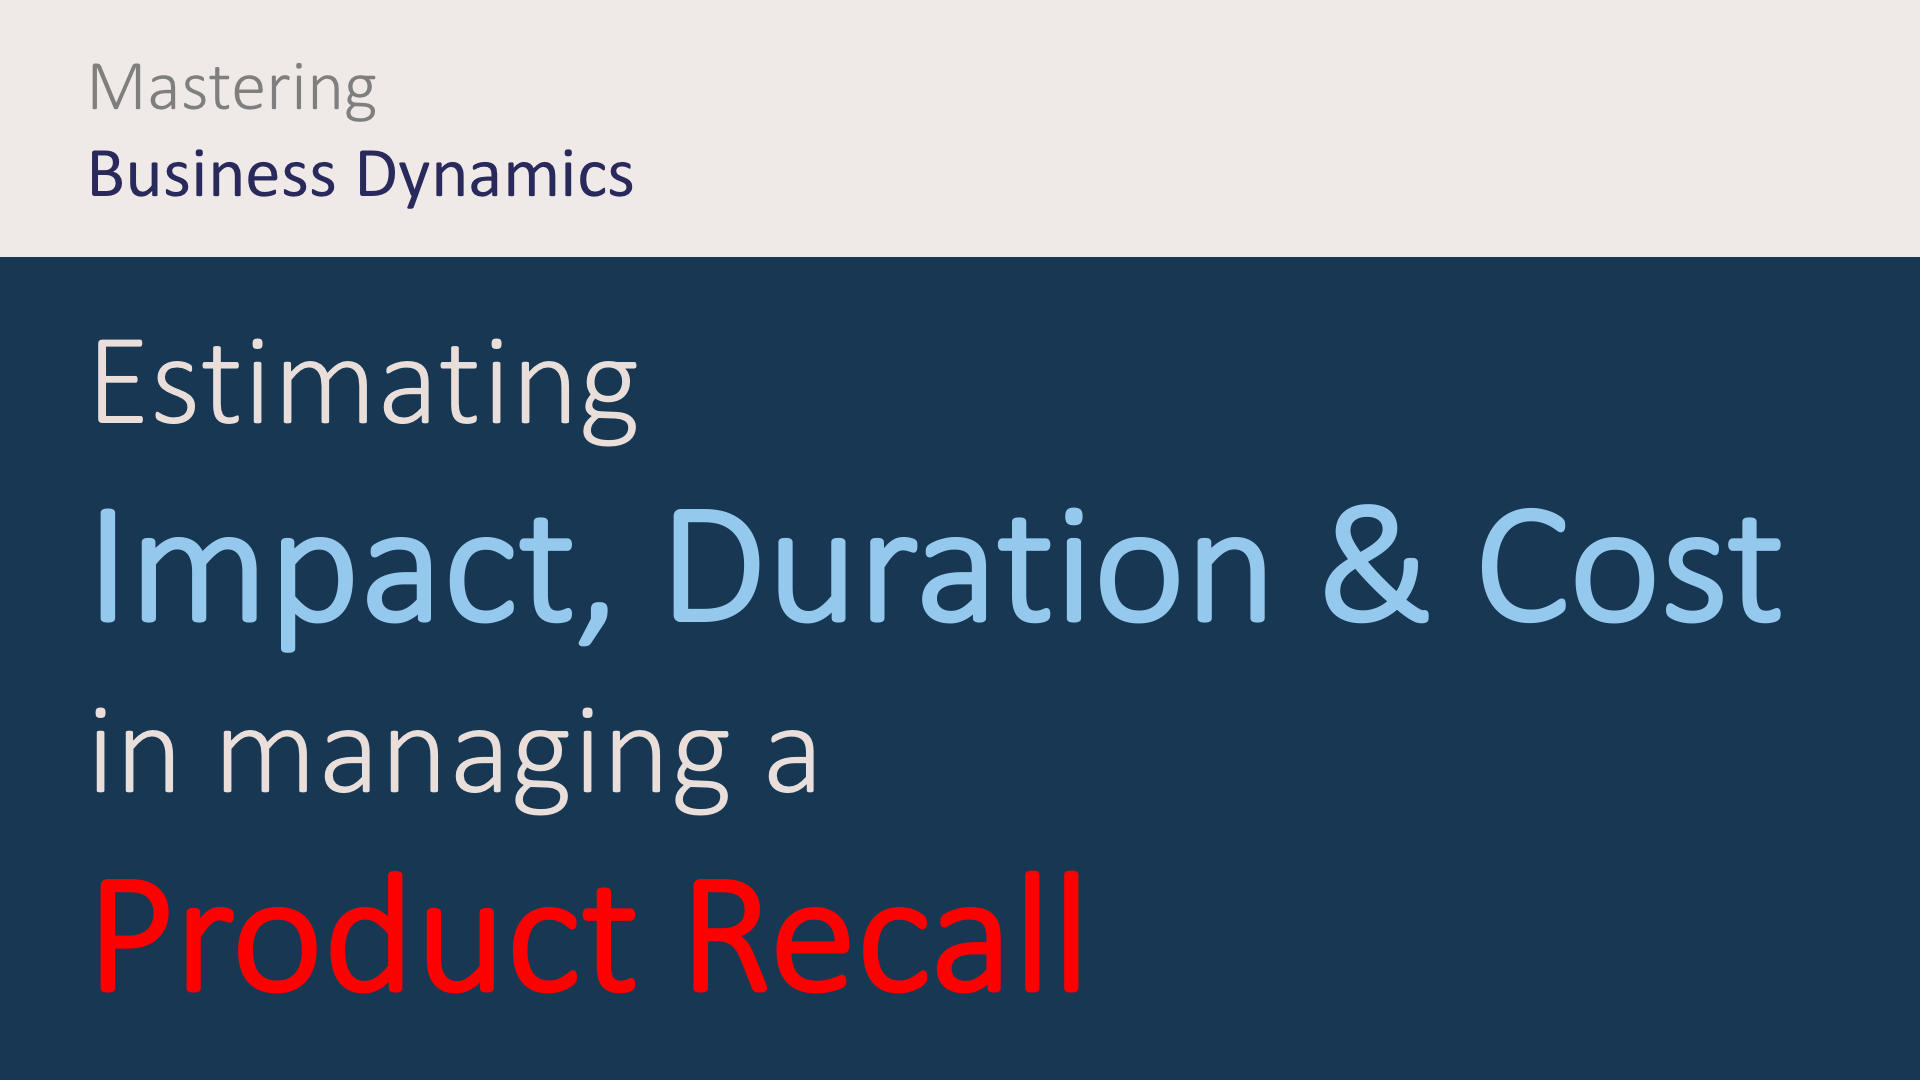 How to estimate the impact and duration of a product recall?